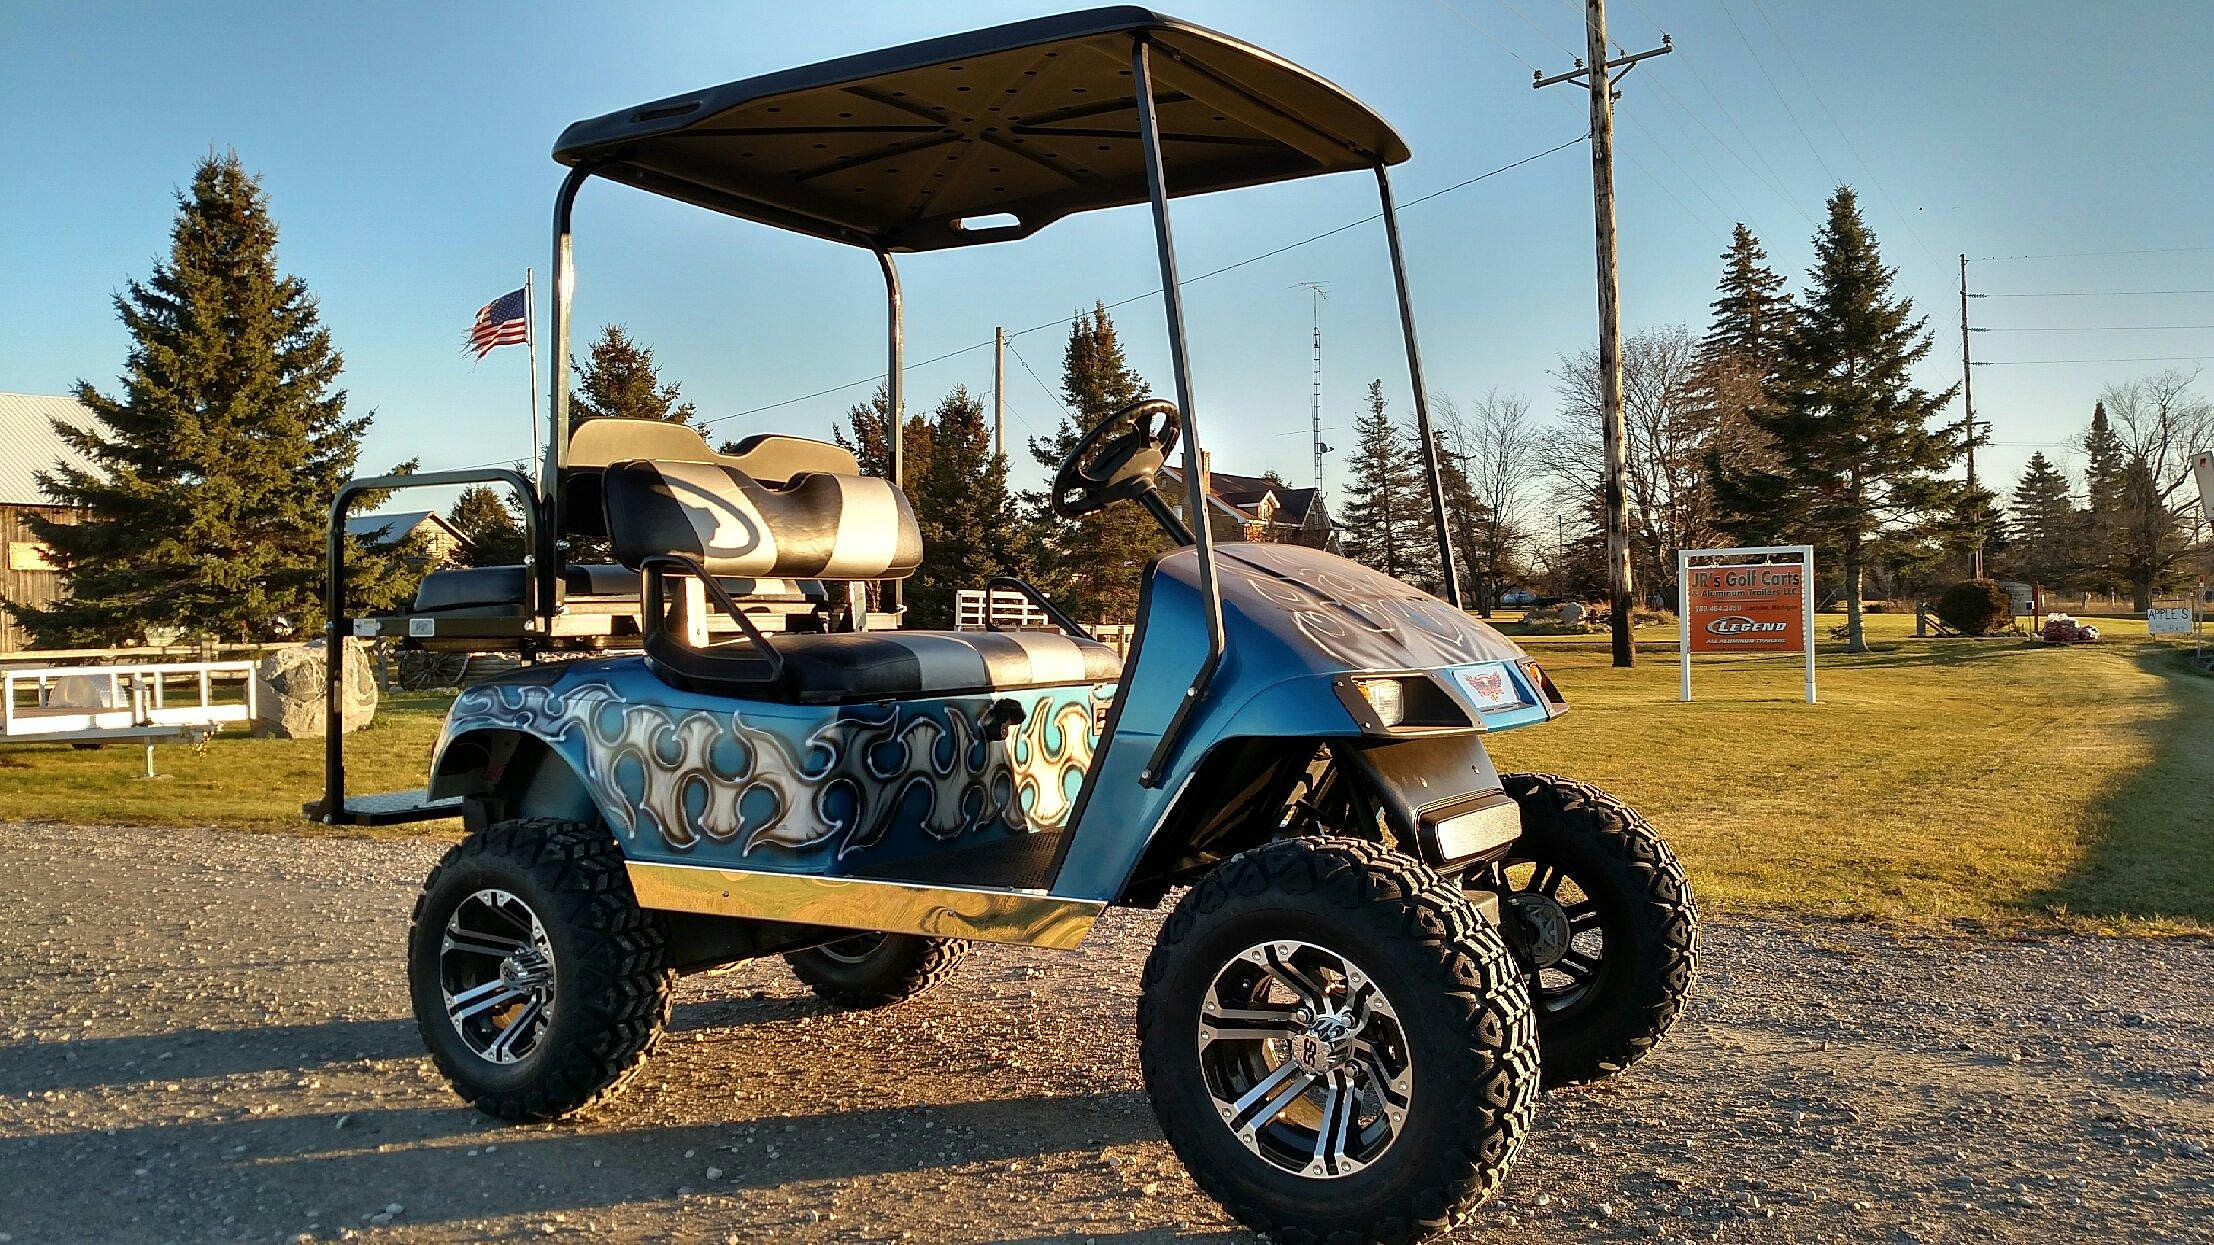 ez go gas golf cart with Dataitem Ilf41ais on 302260040300 together with Platinum Rxv Custom 5995 also Acp Custom California Roadster Golf Cart Cruiser furthermore Golf Cart Portable Propane Heater With Cup Holder likewise Watch.